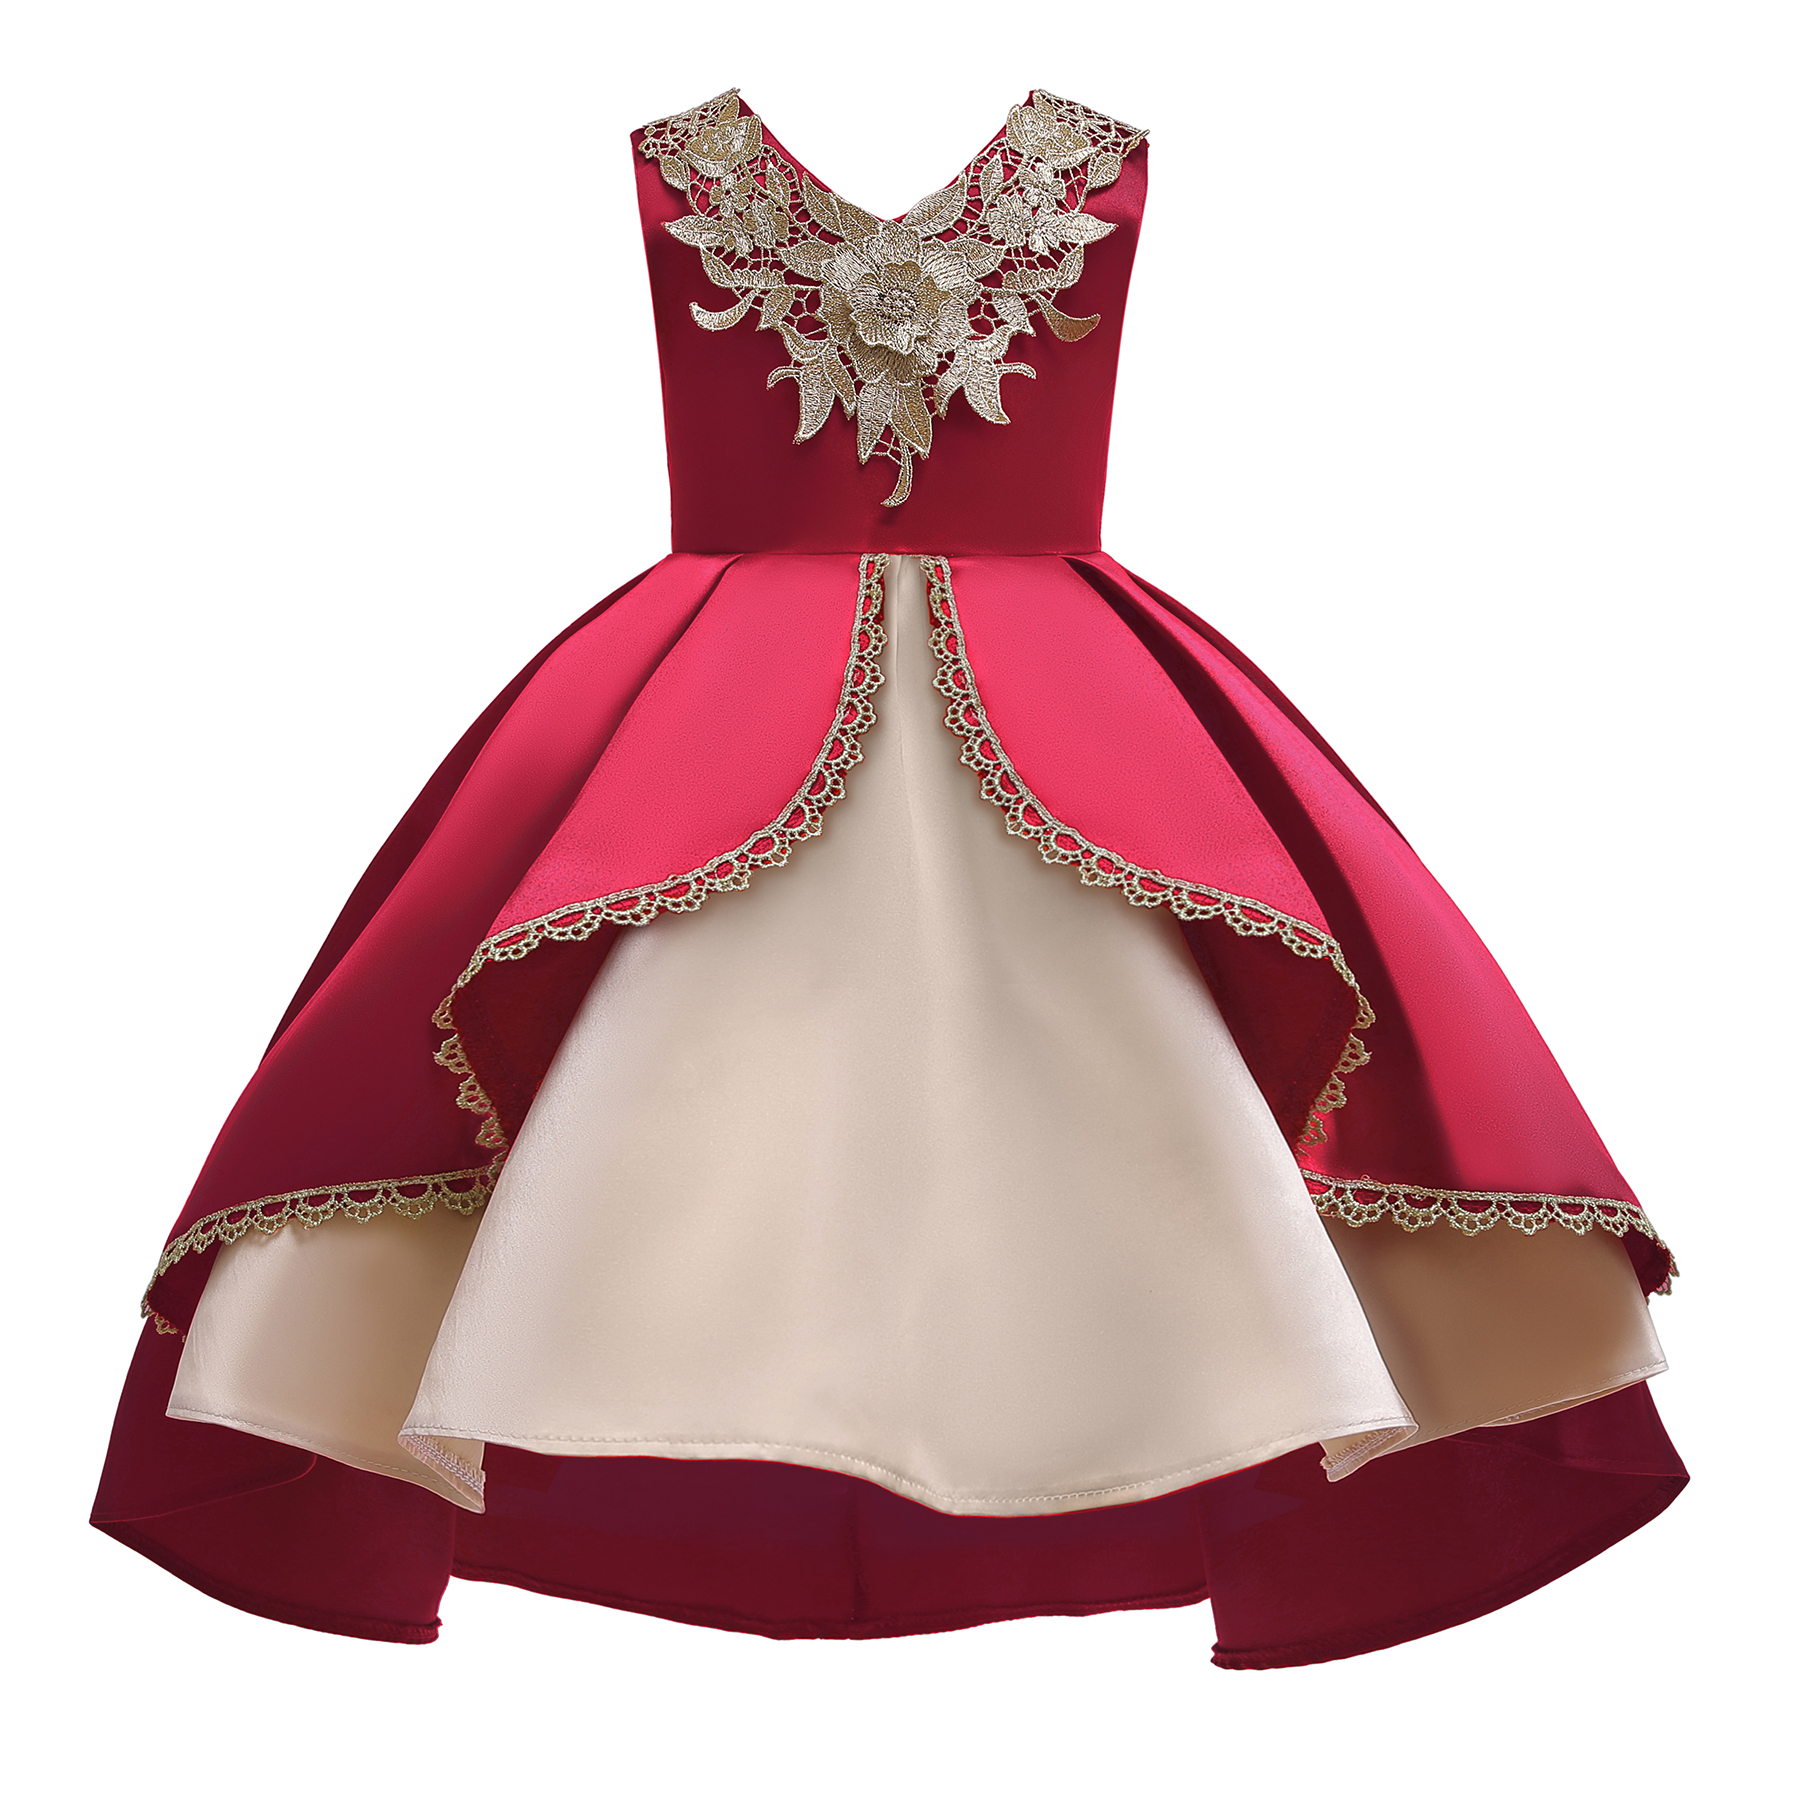 Petit Camelia Girl Party Dress 2019 Elegant Girl Evening Dress For Wedding Birthday Kids Dresses For 3 to 9 Years Girls